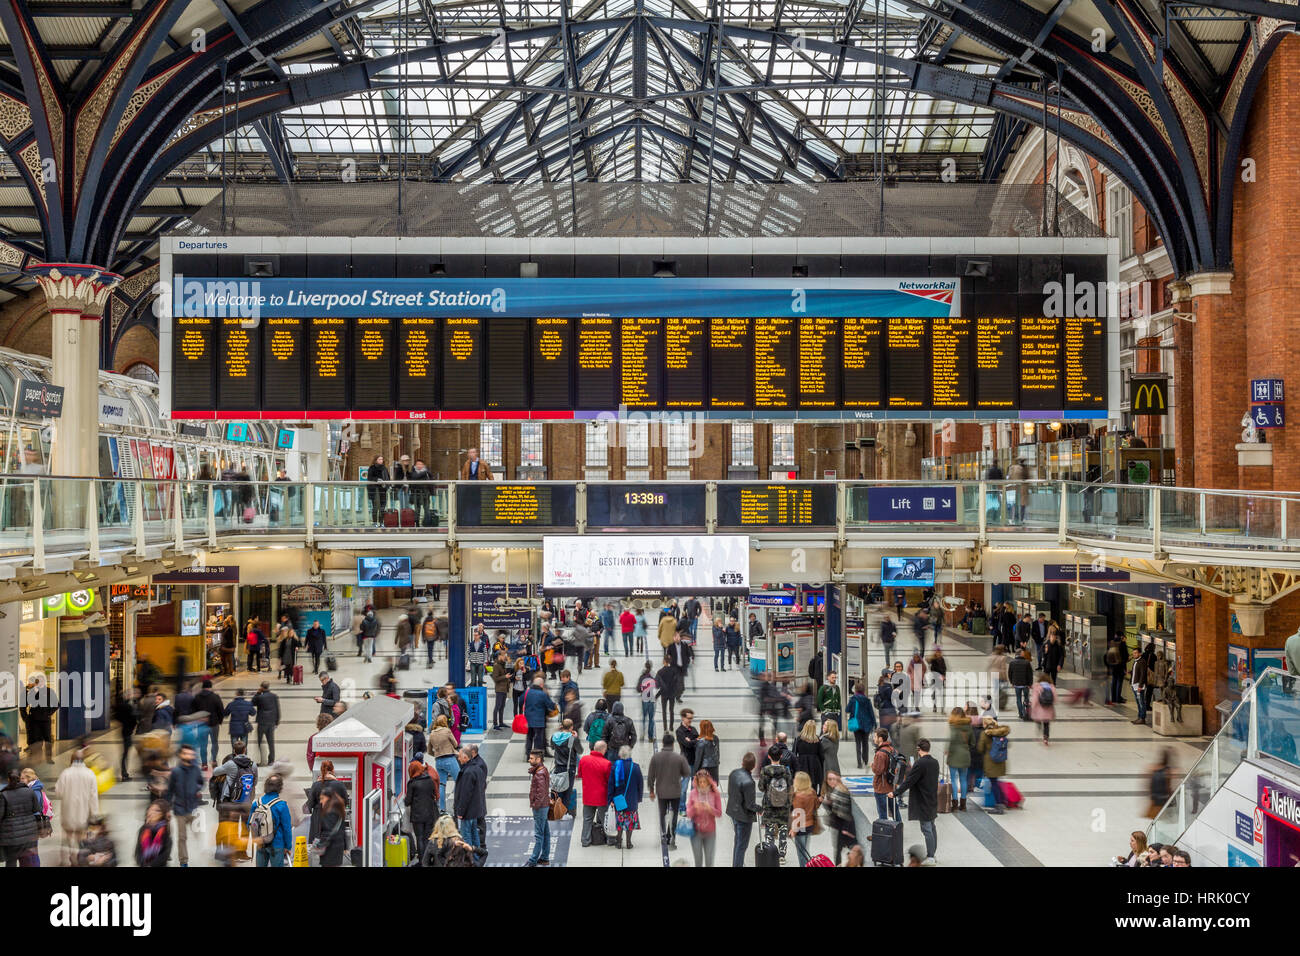 Liverpool Street Station Concourse, London England UK - Stock Image